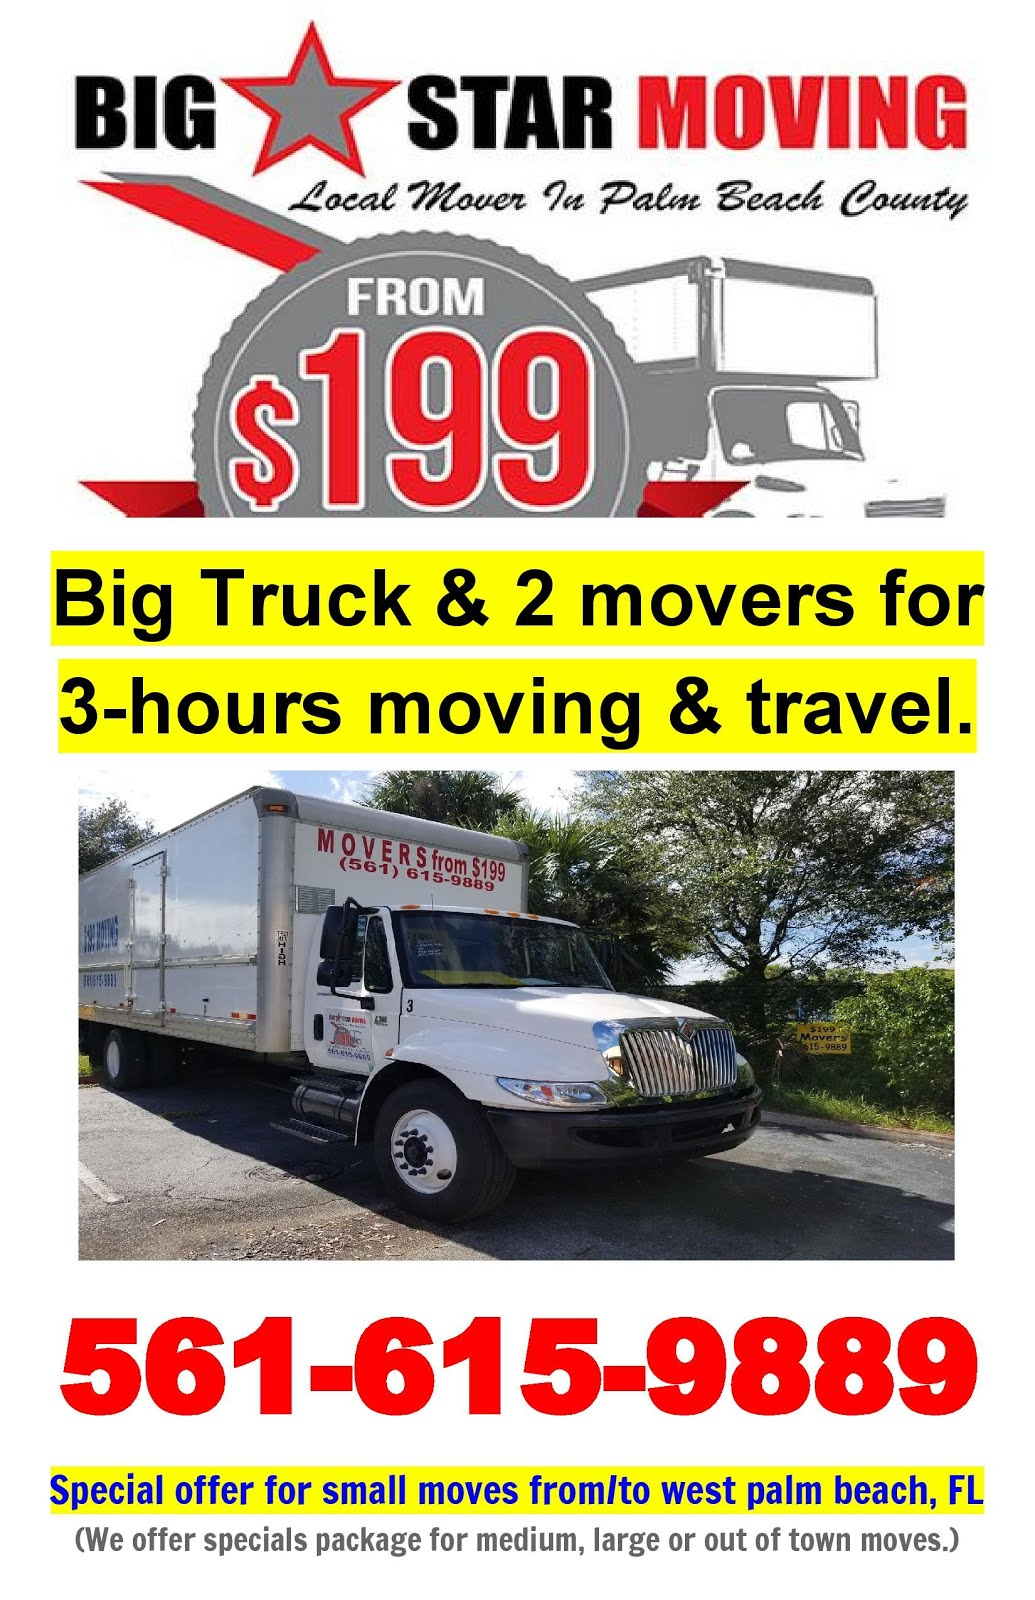 Moving Truck Companies Near Me >> Big Star Moving West Palm Beach Moving Companies From 199 Movers